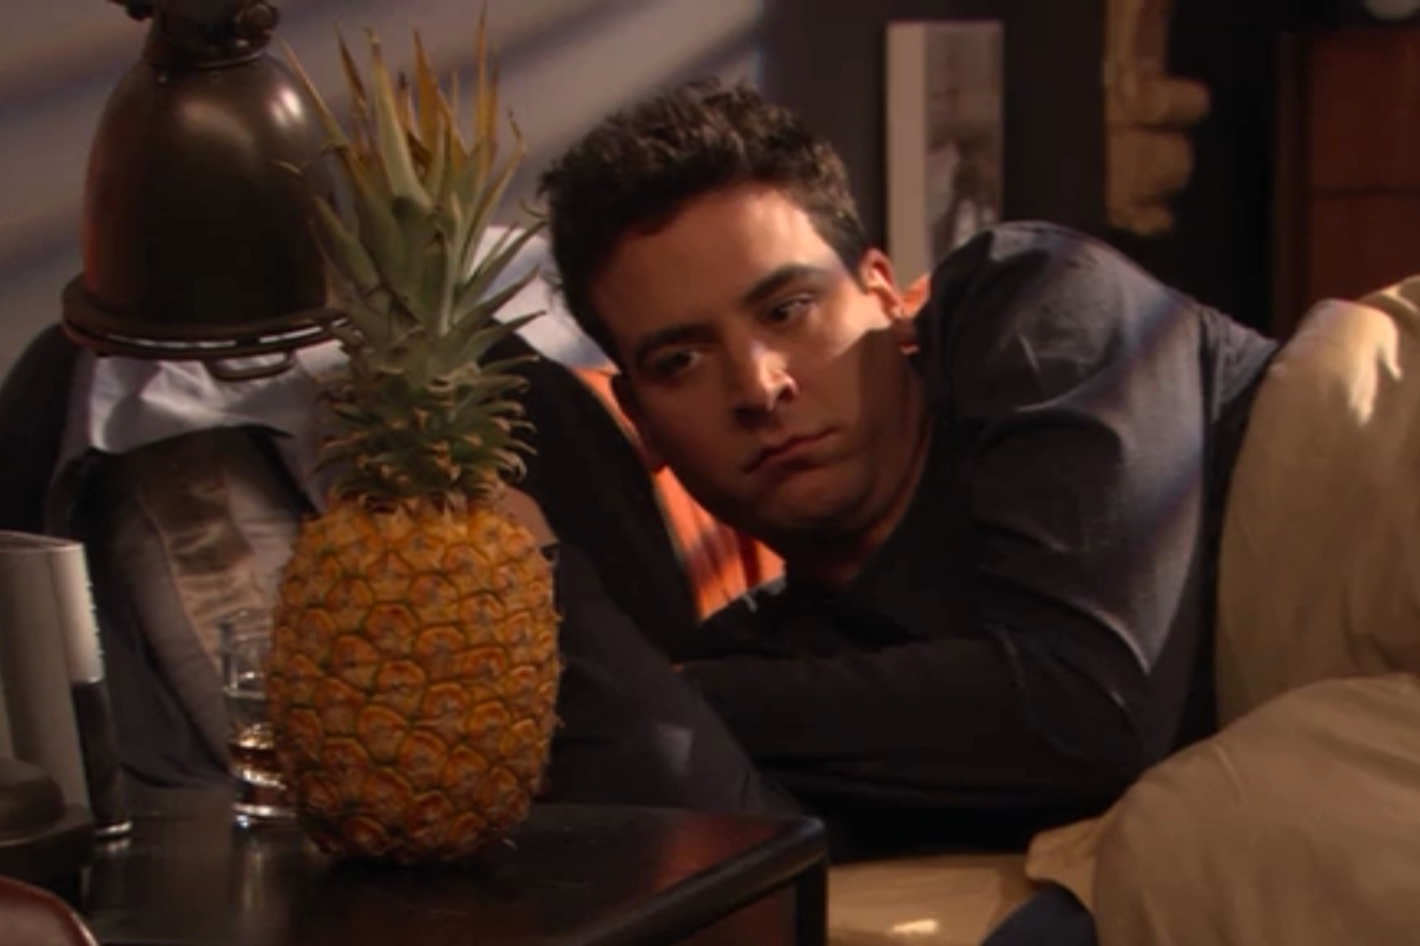 the-pineapple-incident.jpg